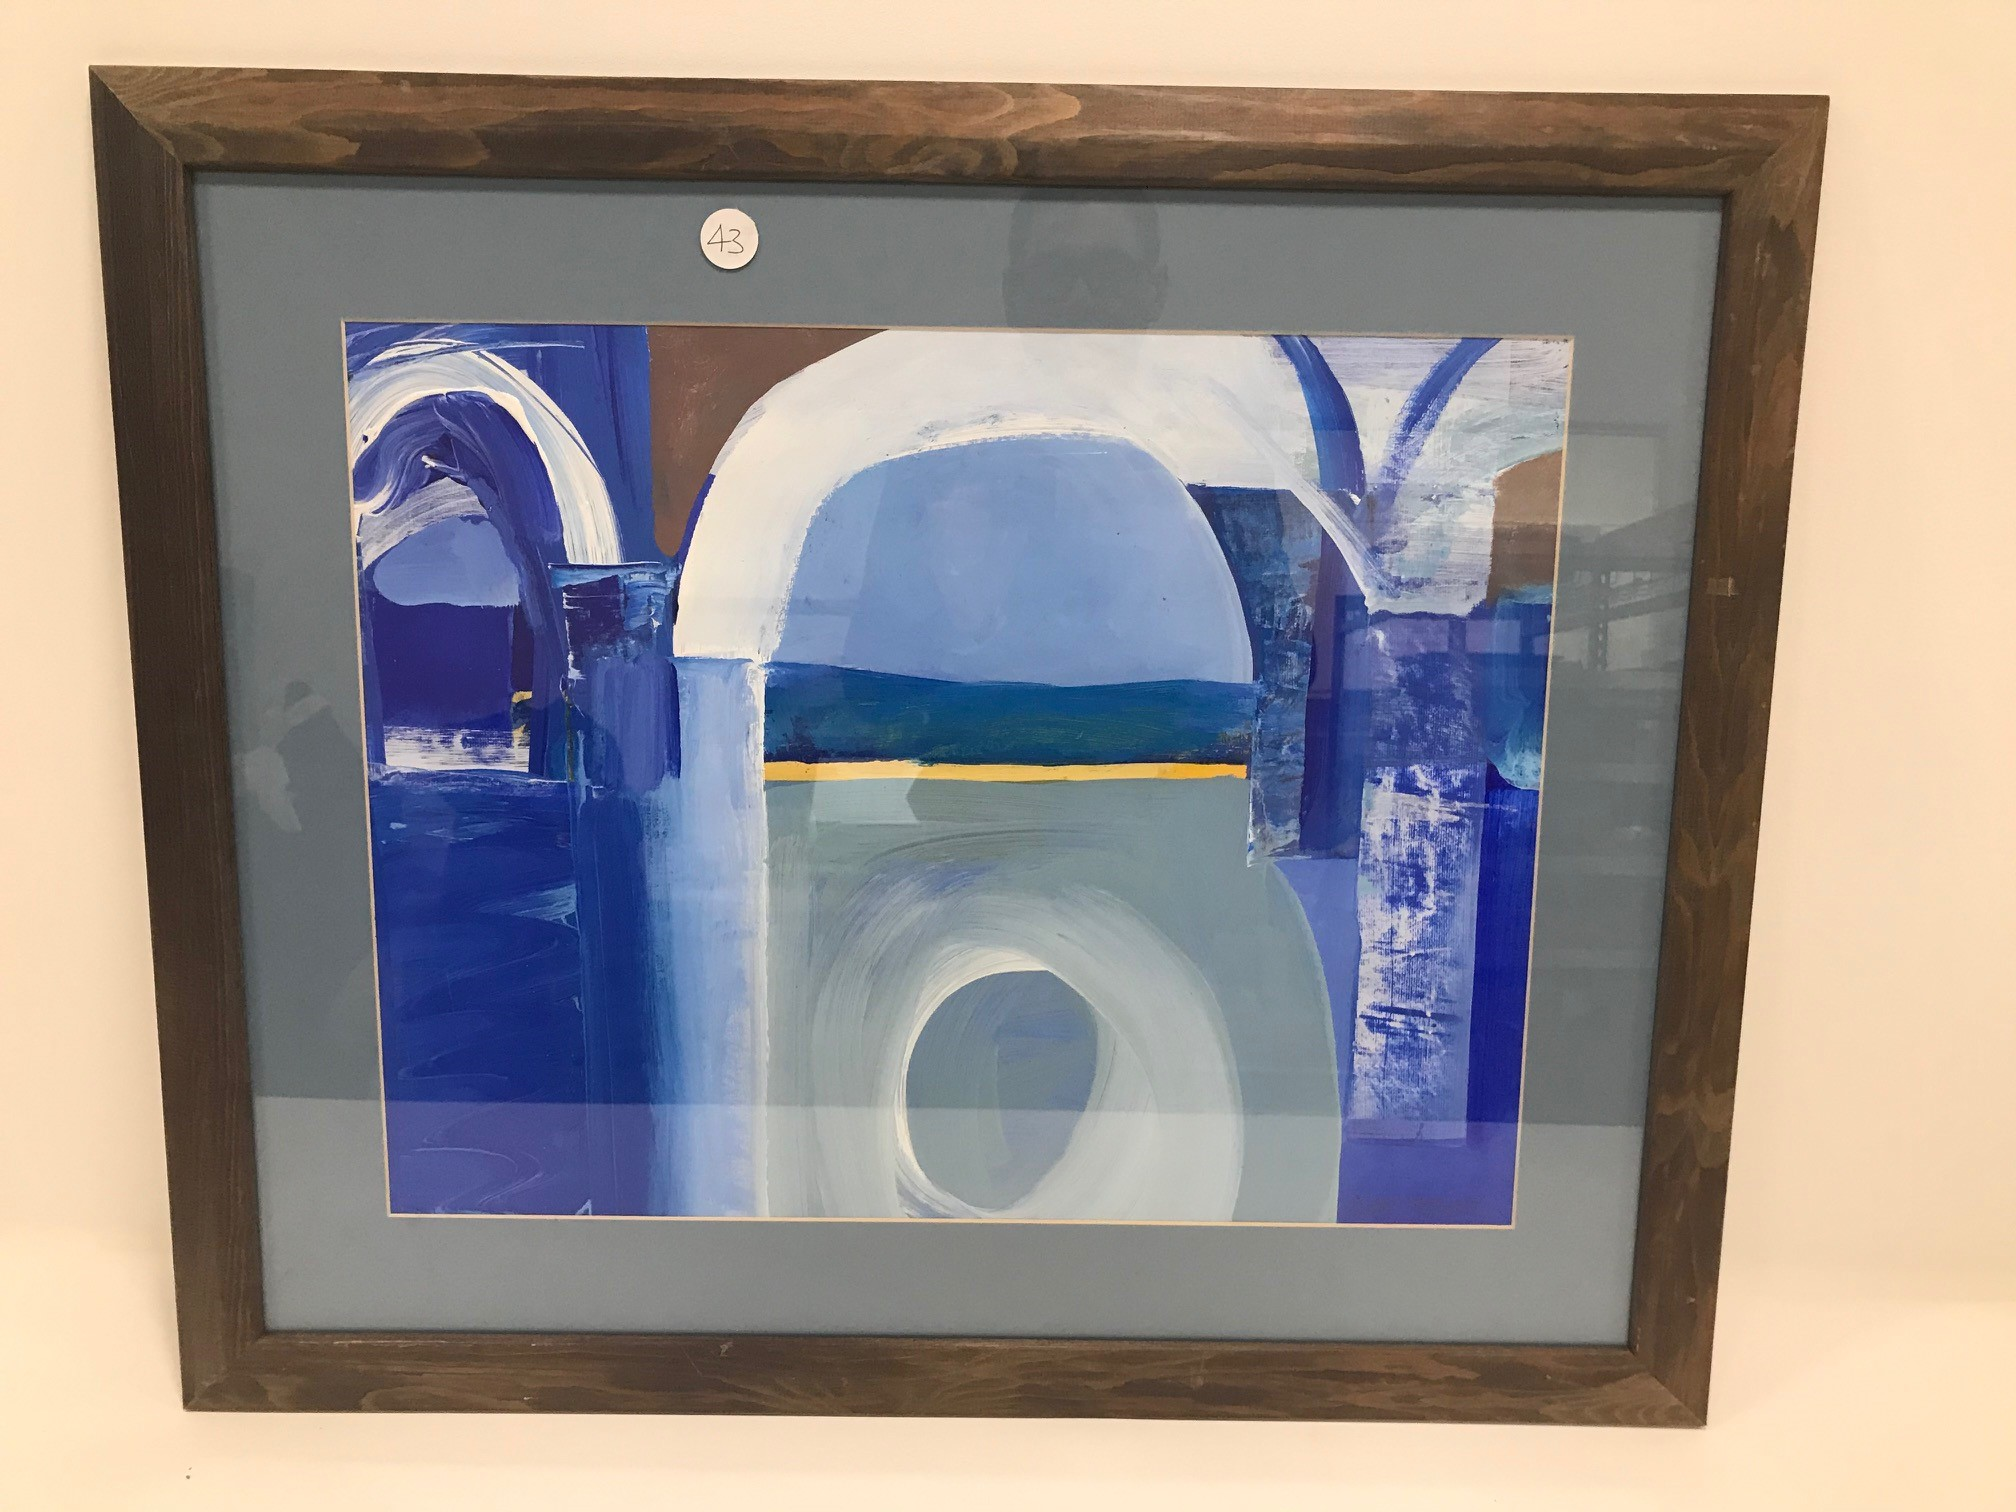 Jack Hellewell (1920-2000) gouache on paper, depicting a view of the ocean through architectural